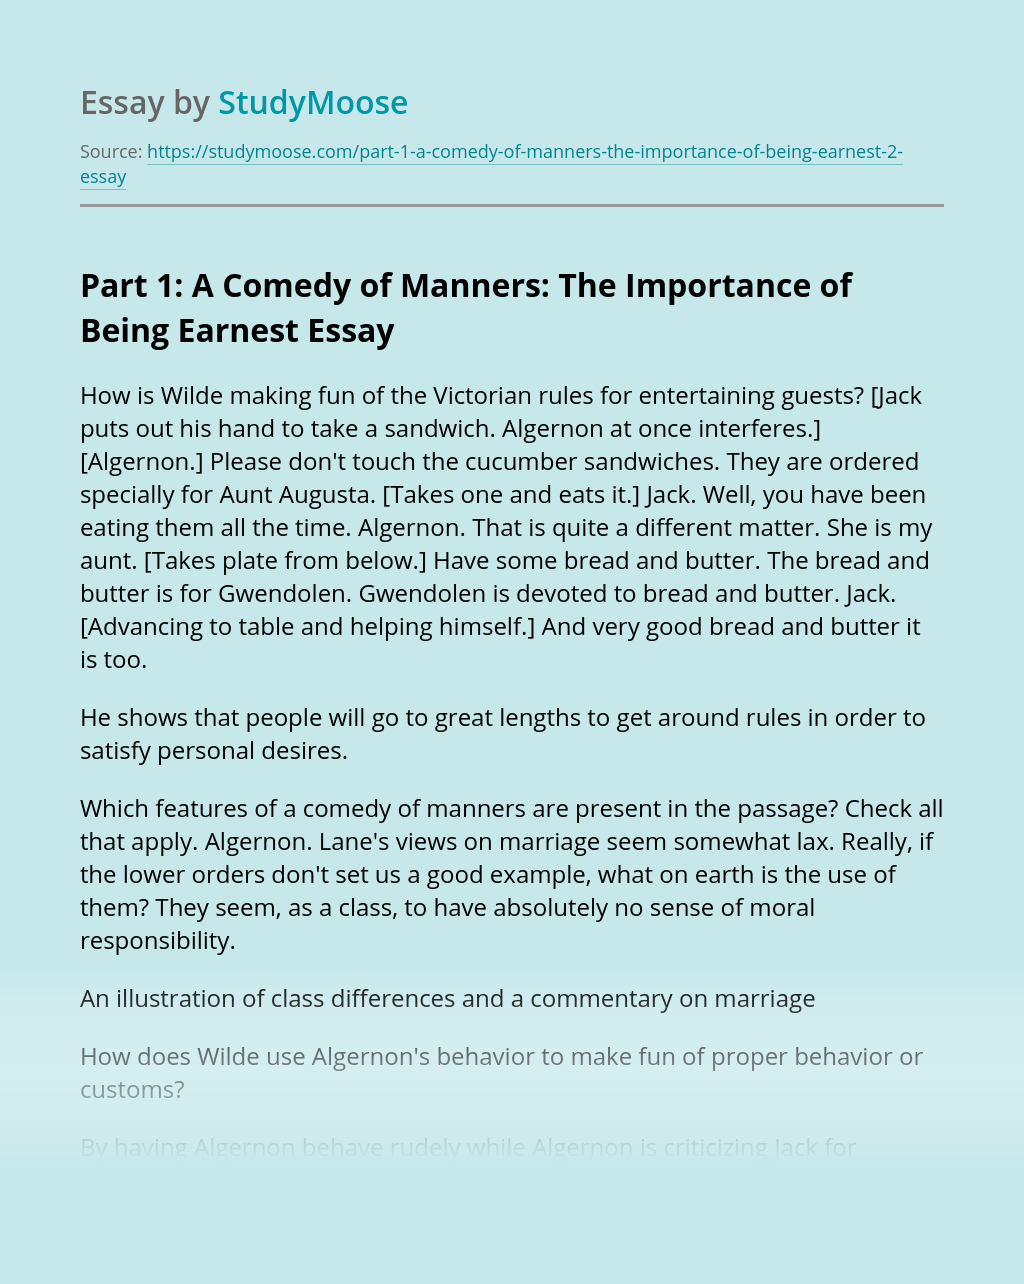 Part 1: A Comedy of Manners: The Importance of Being Earnest